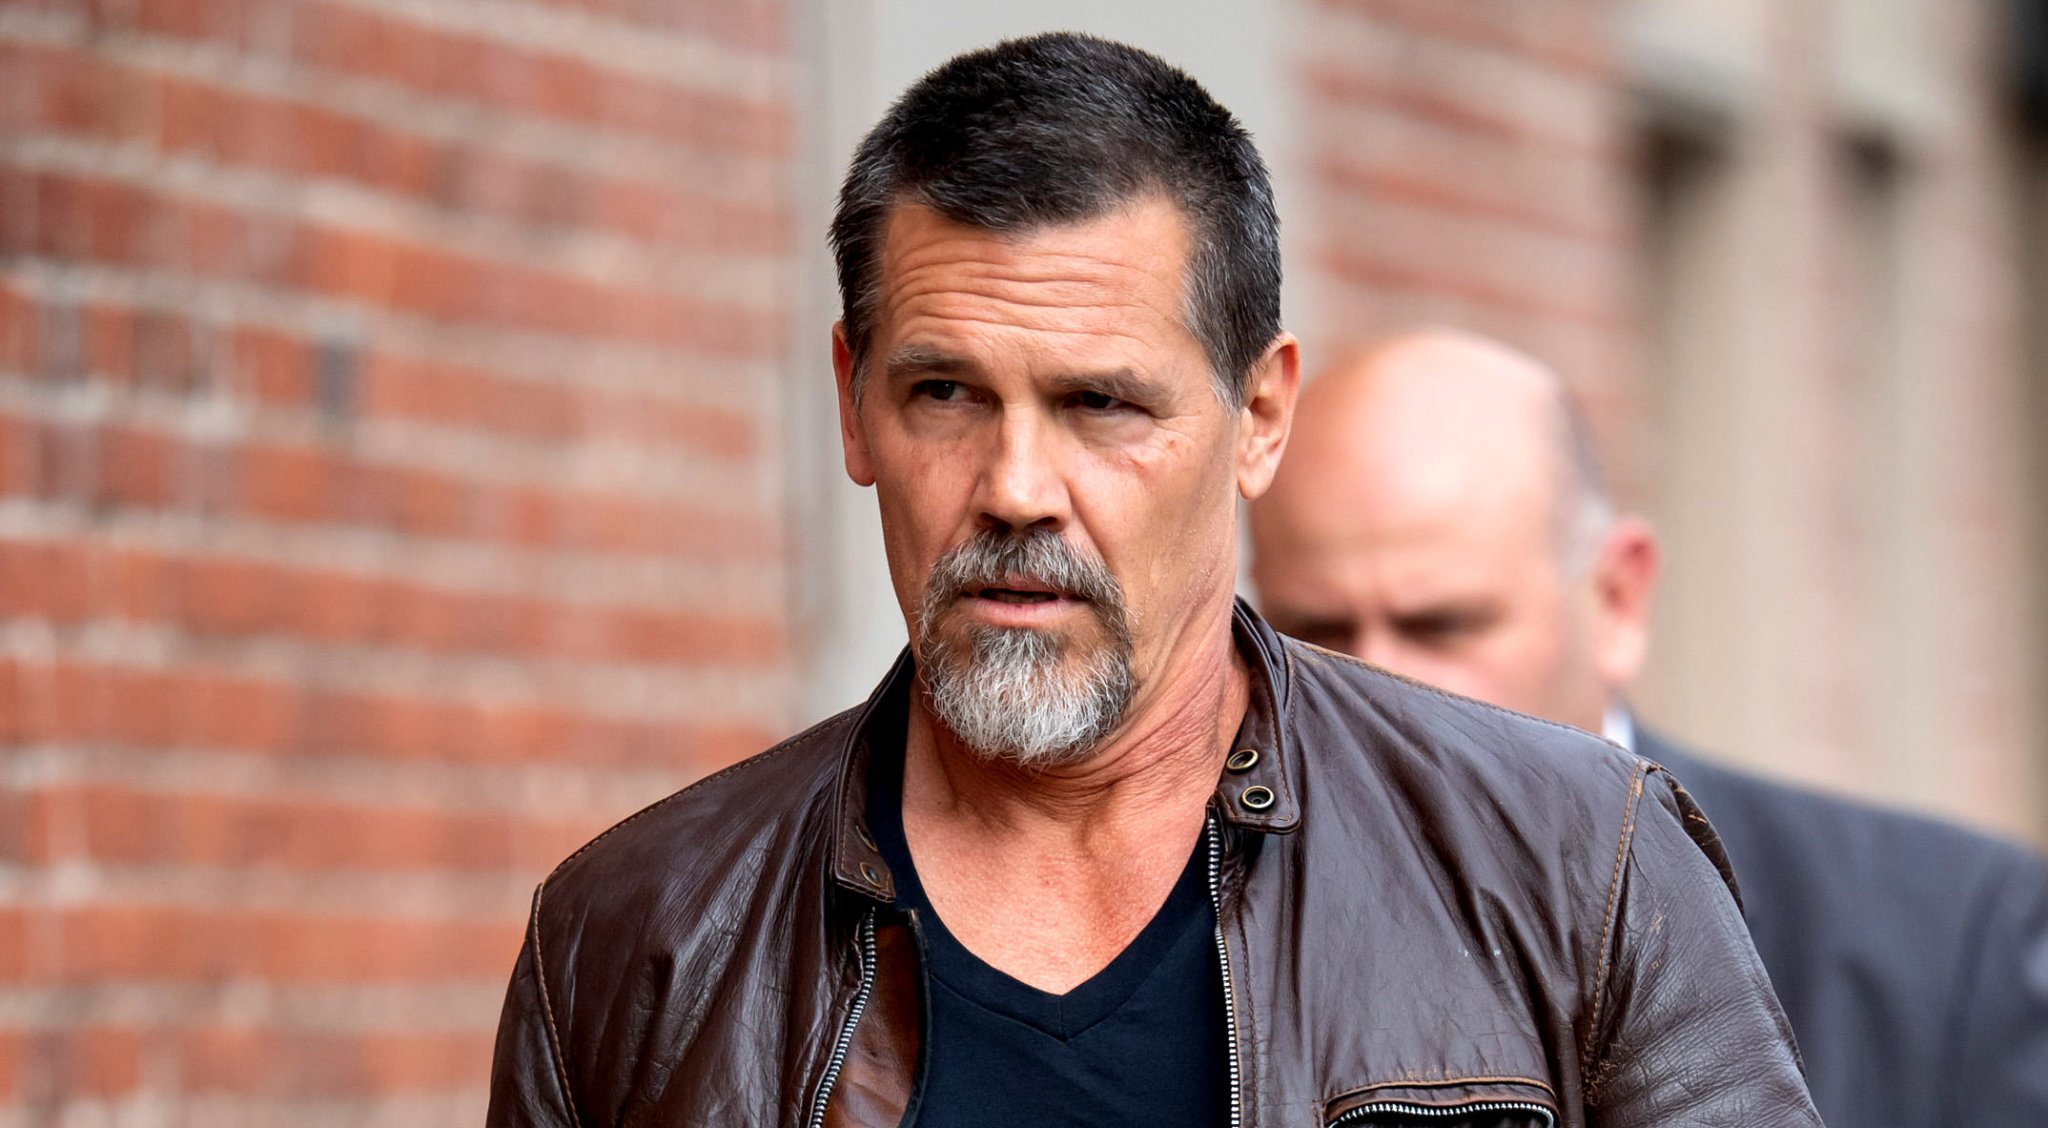 Josh Brolin Issues Dire Warning After Trying Out The Viral 'B**thole Sunning' Wellness Trend - BroBible